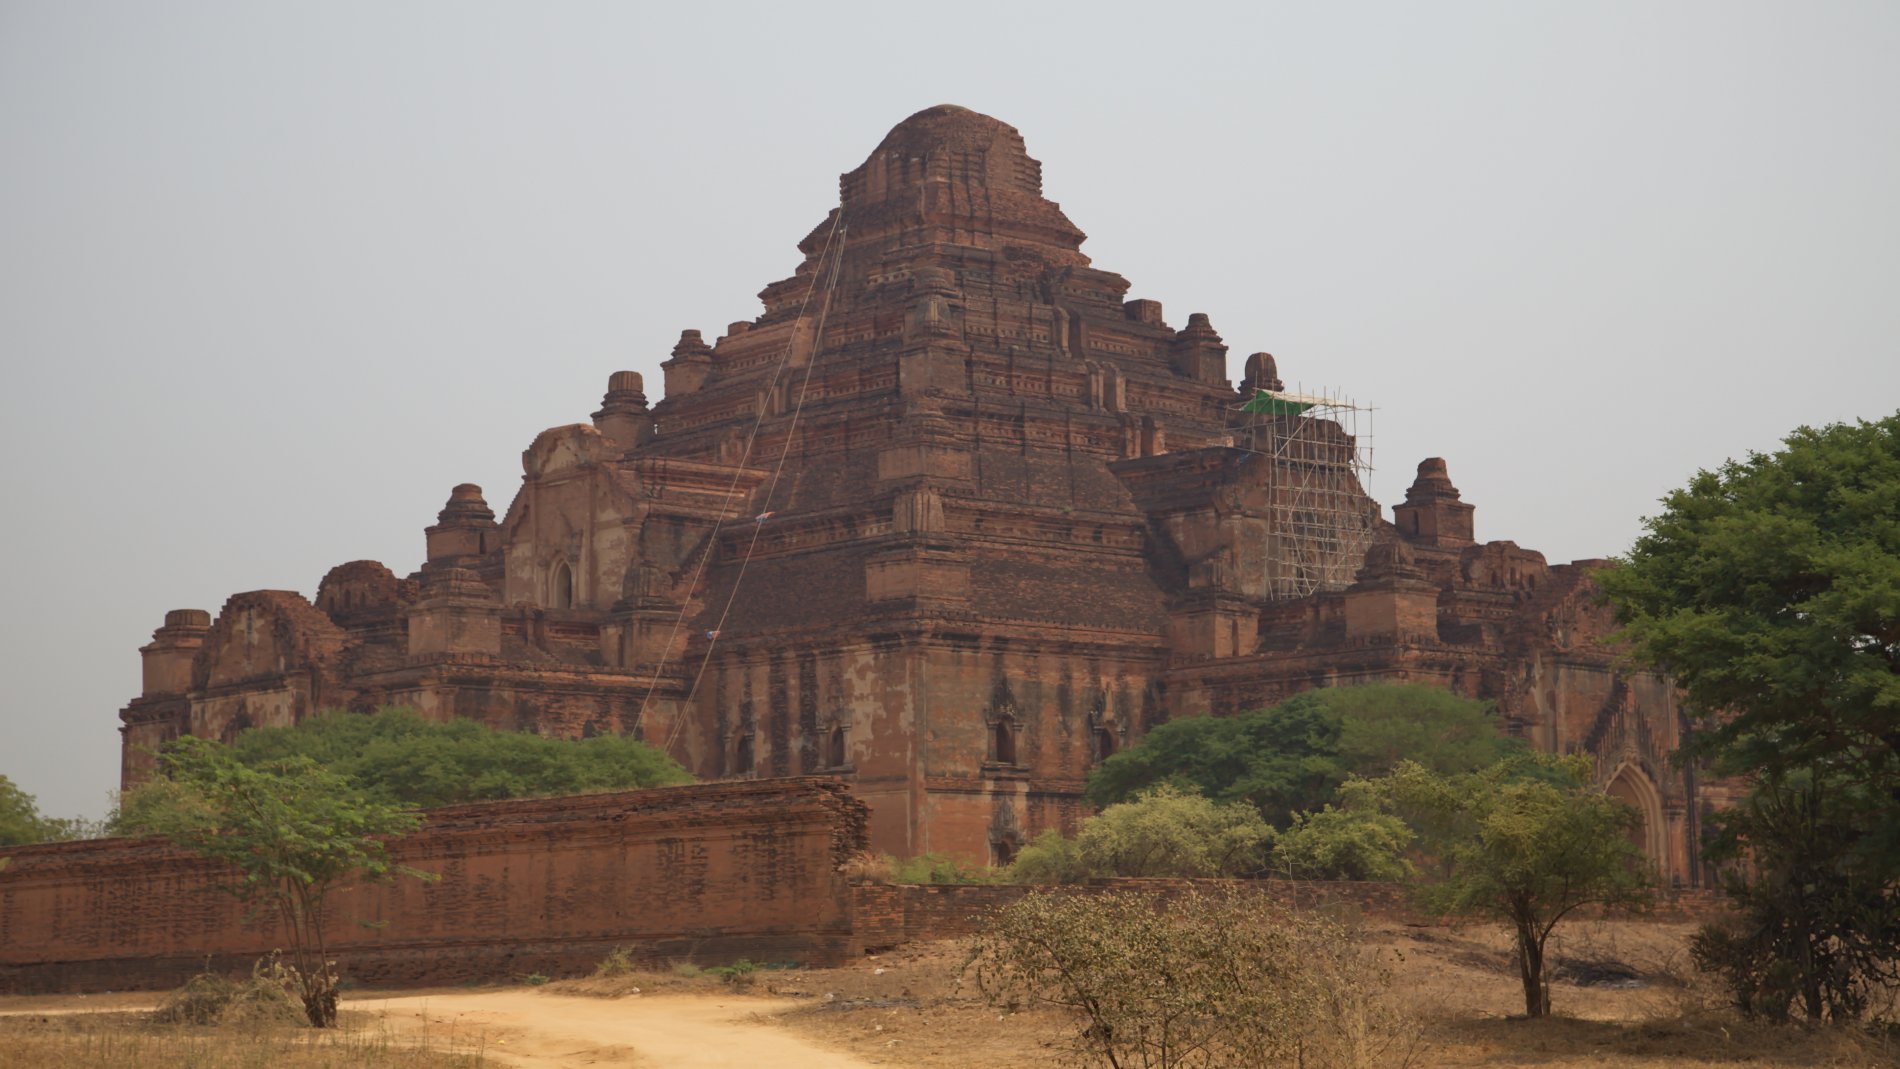 Bagan_140.jpg-commment